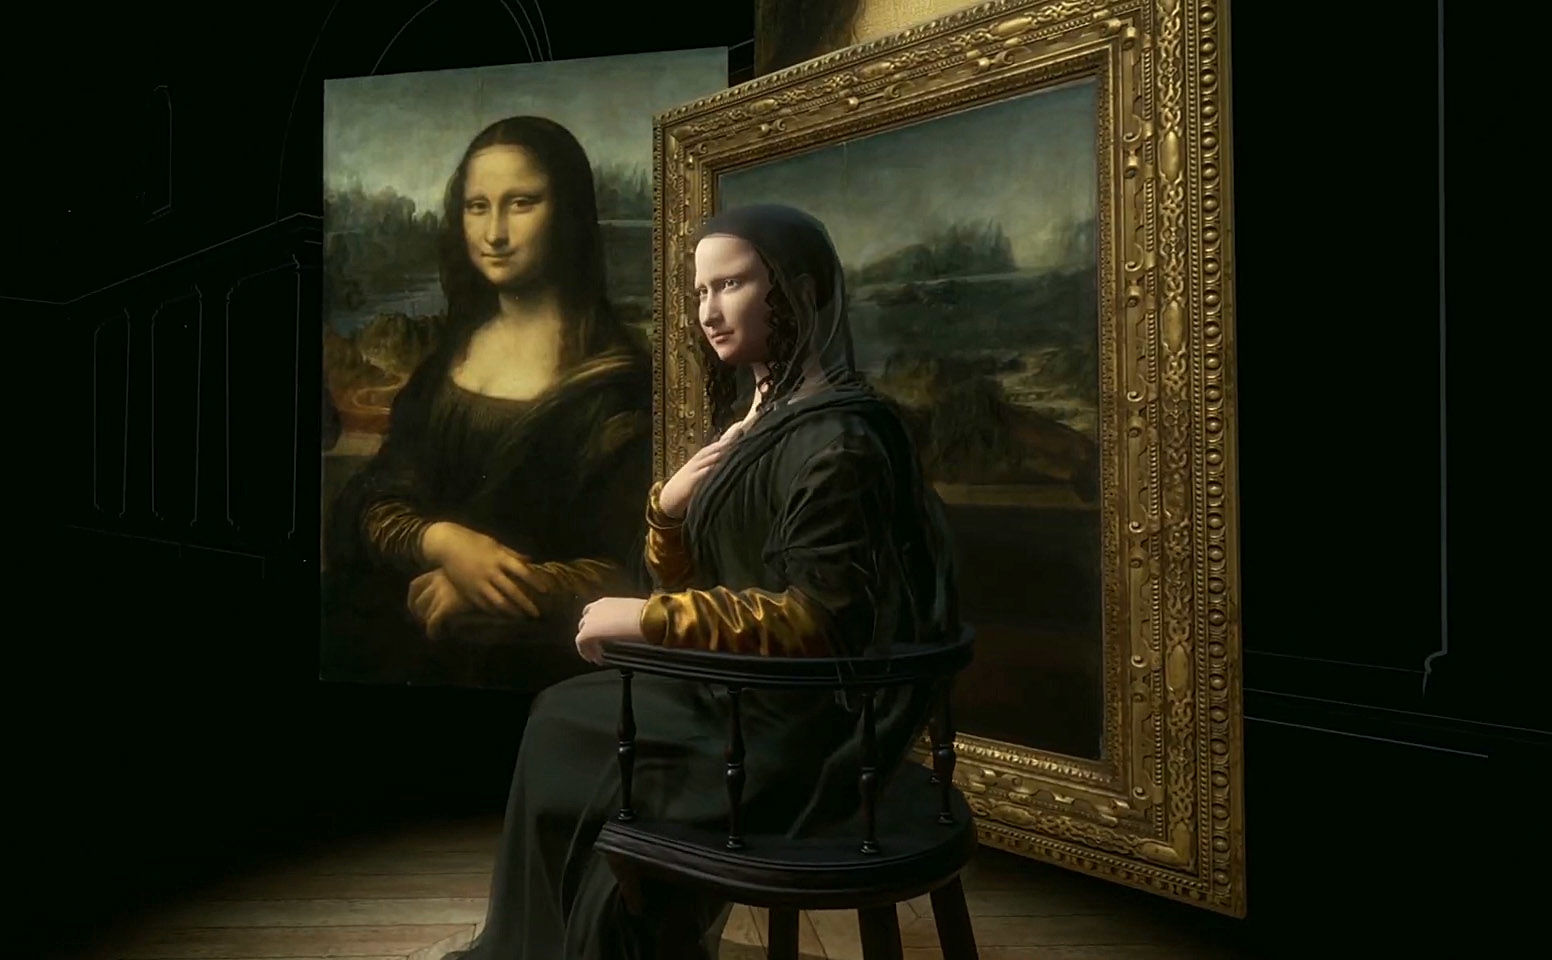 In the Louvre put up a 3D copy of Mona Lisa sitting on a chair